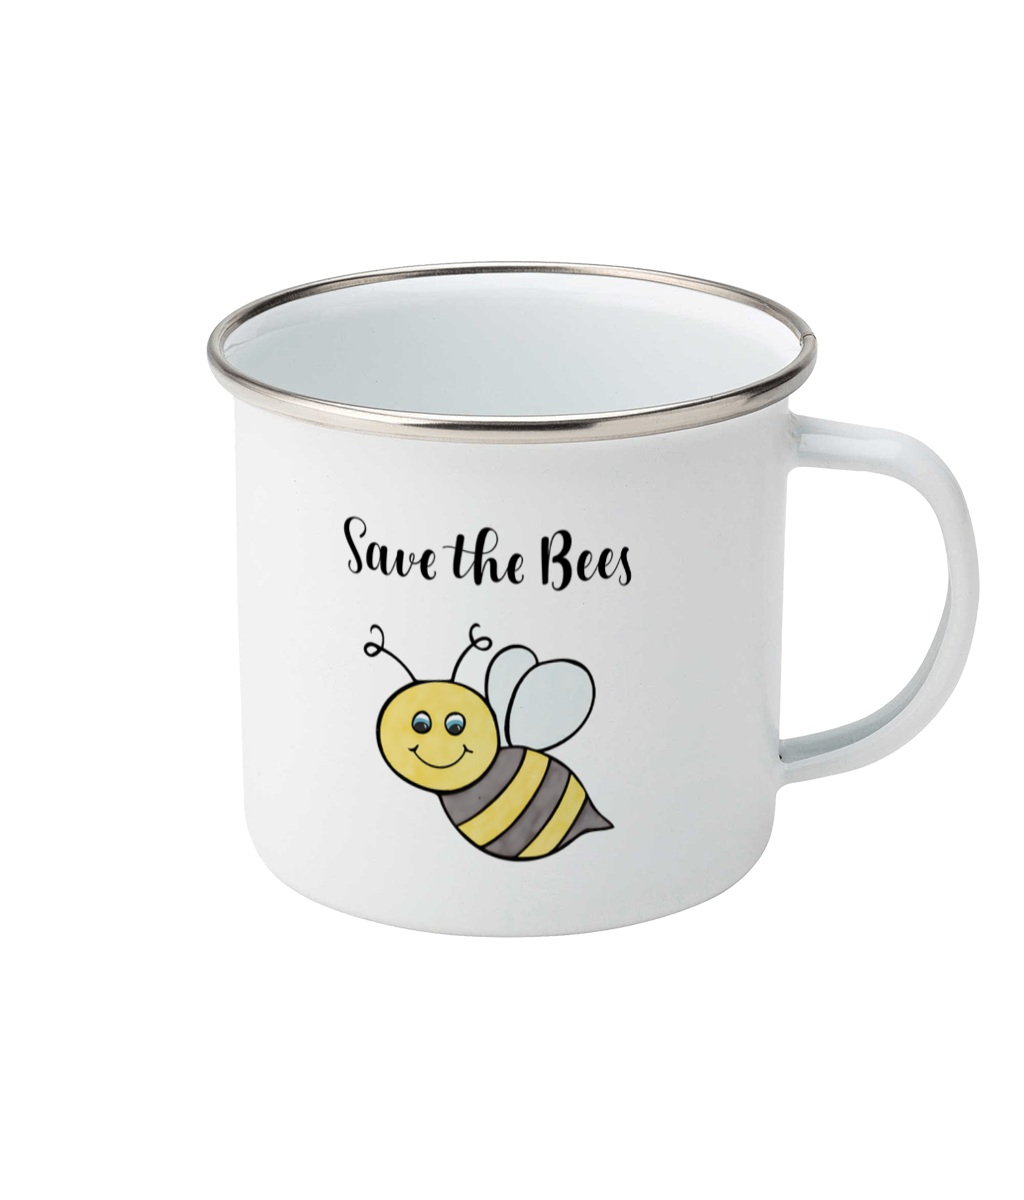 Save the bees design on a white enamel mug